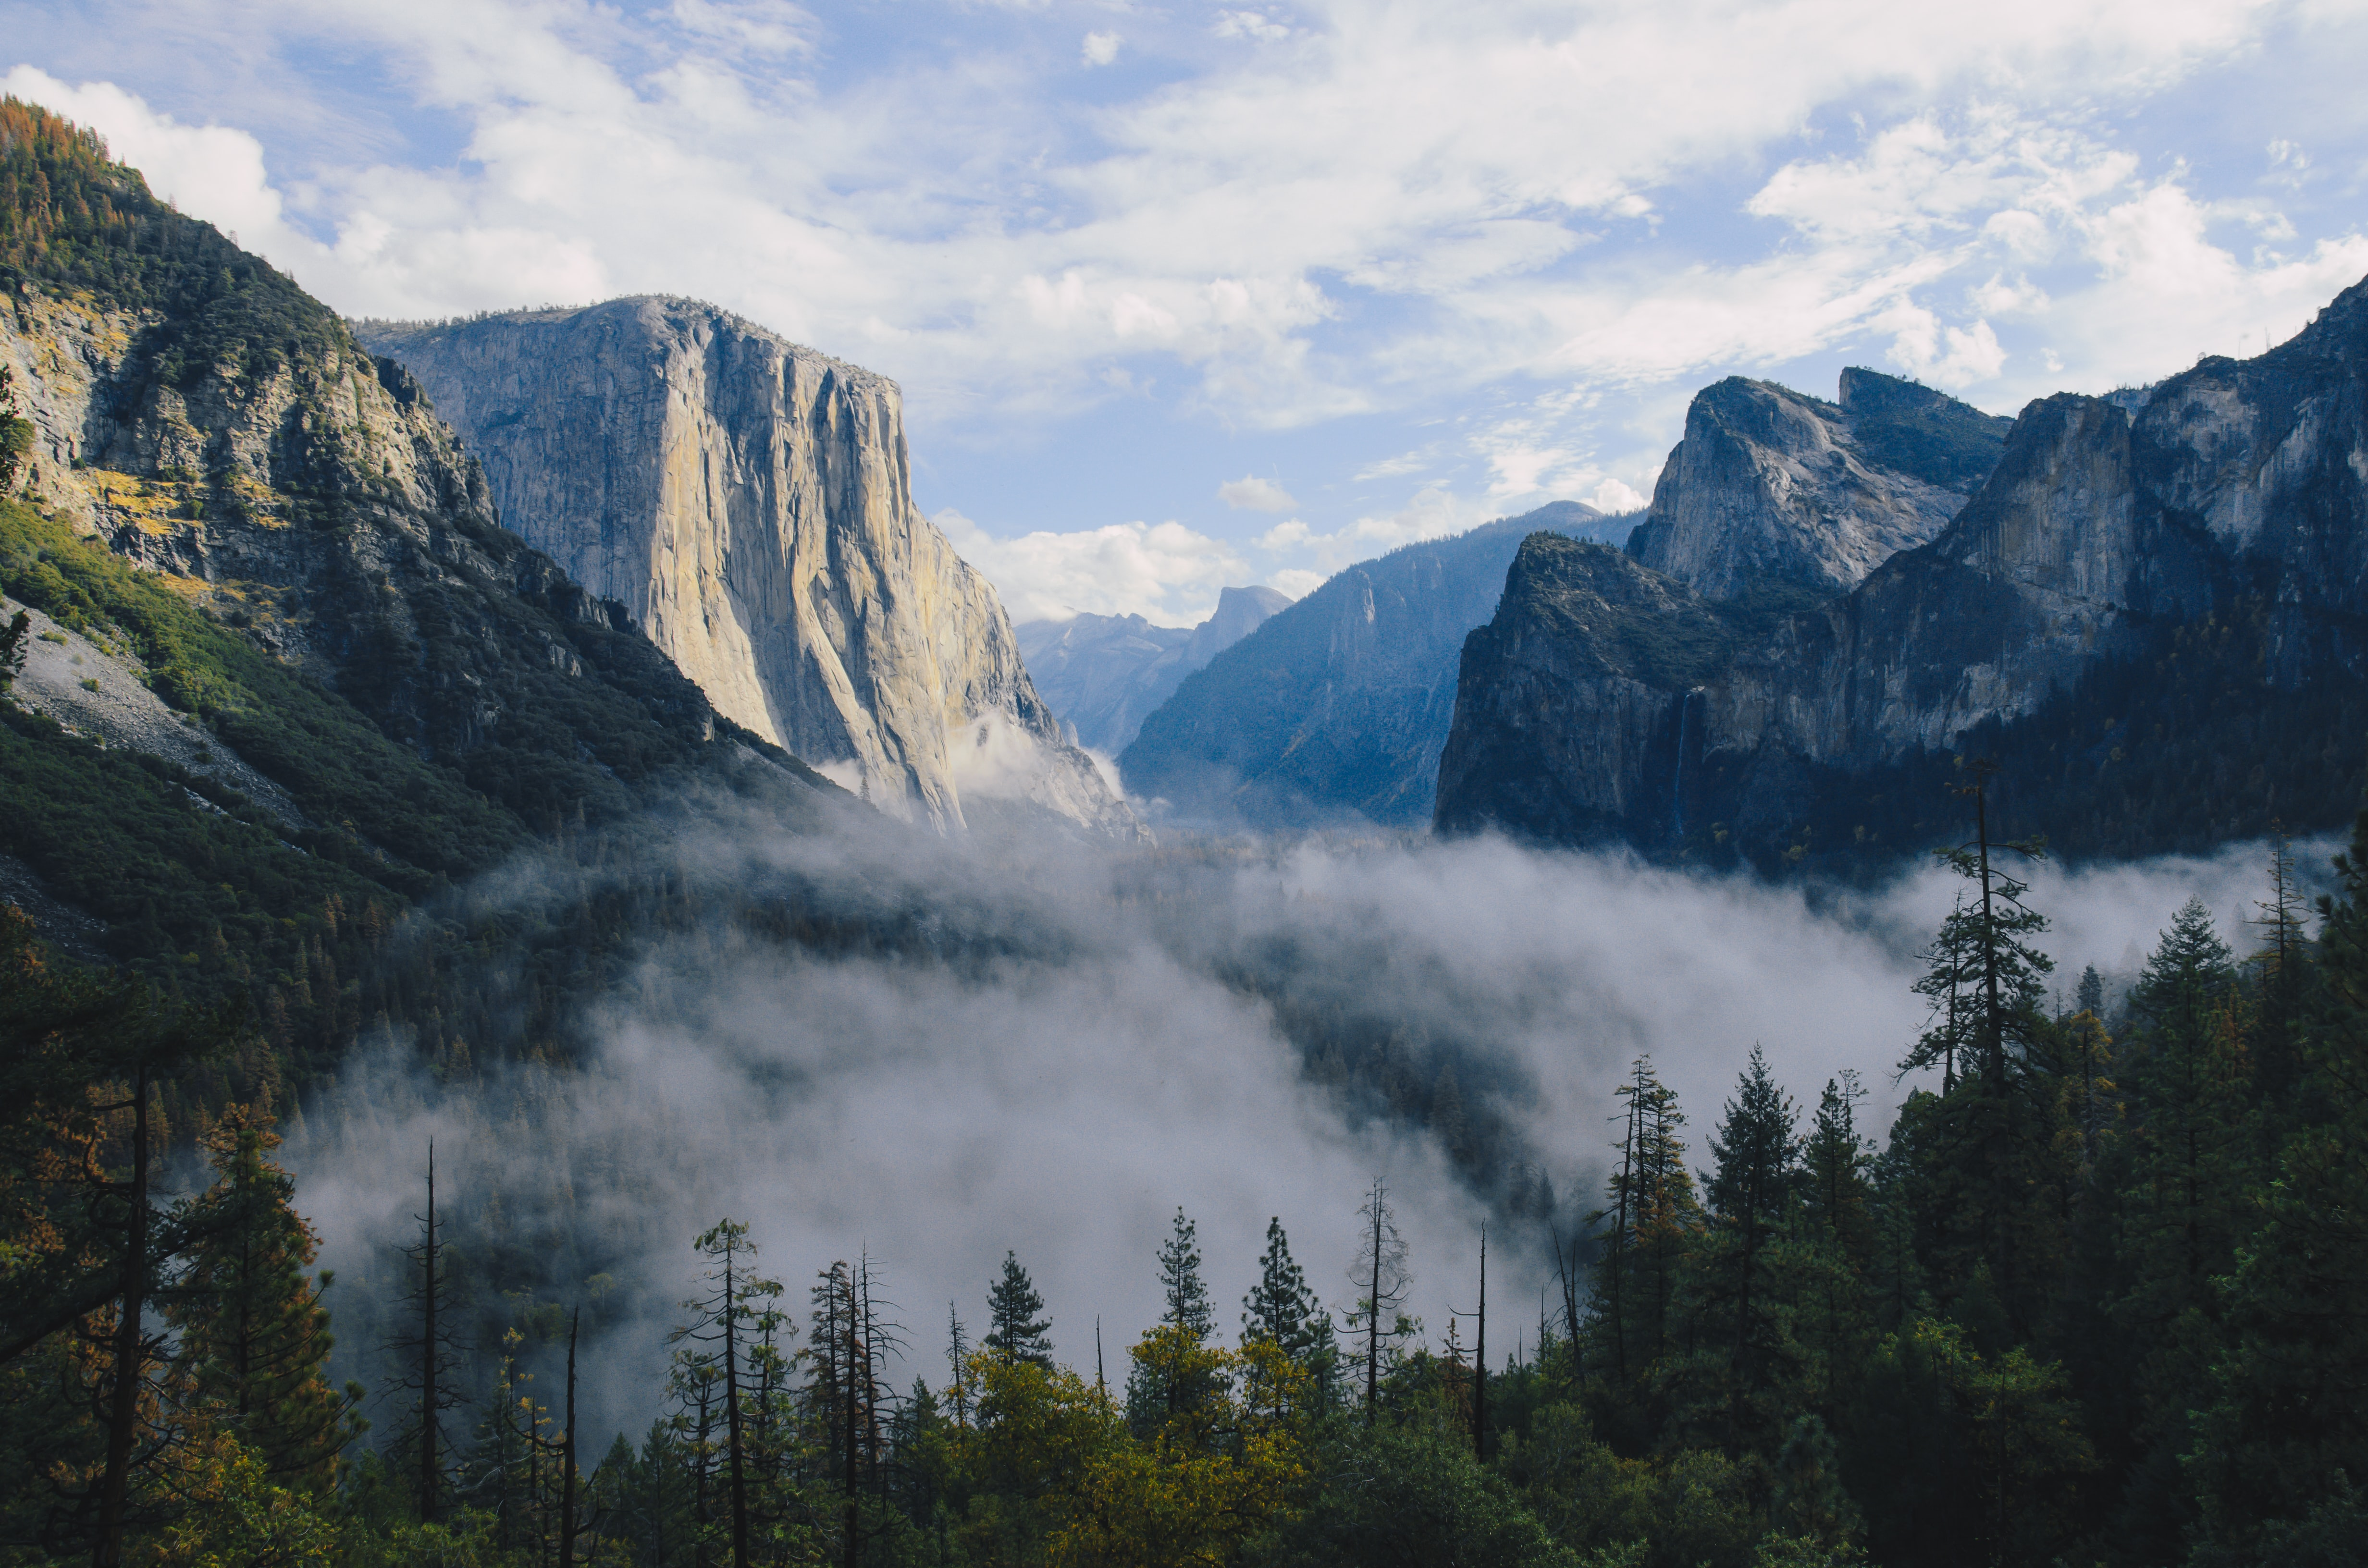 Mist over the bottom of Yosemite Valley with view on El Capitan